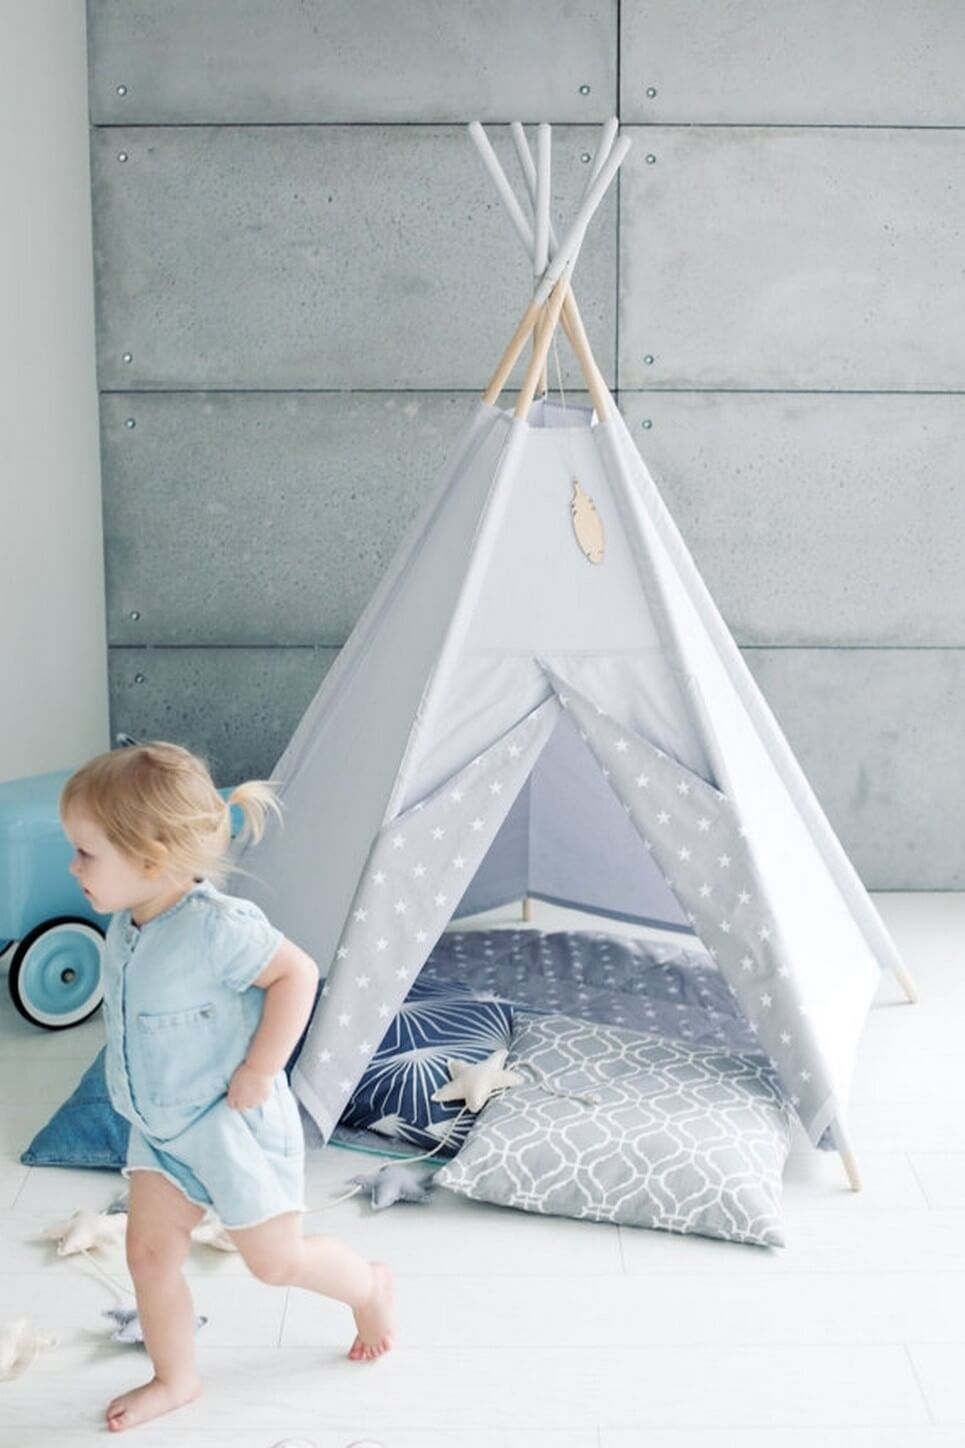 Grey Sky Children S Teepee Tent Decorative Kids Play